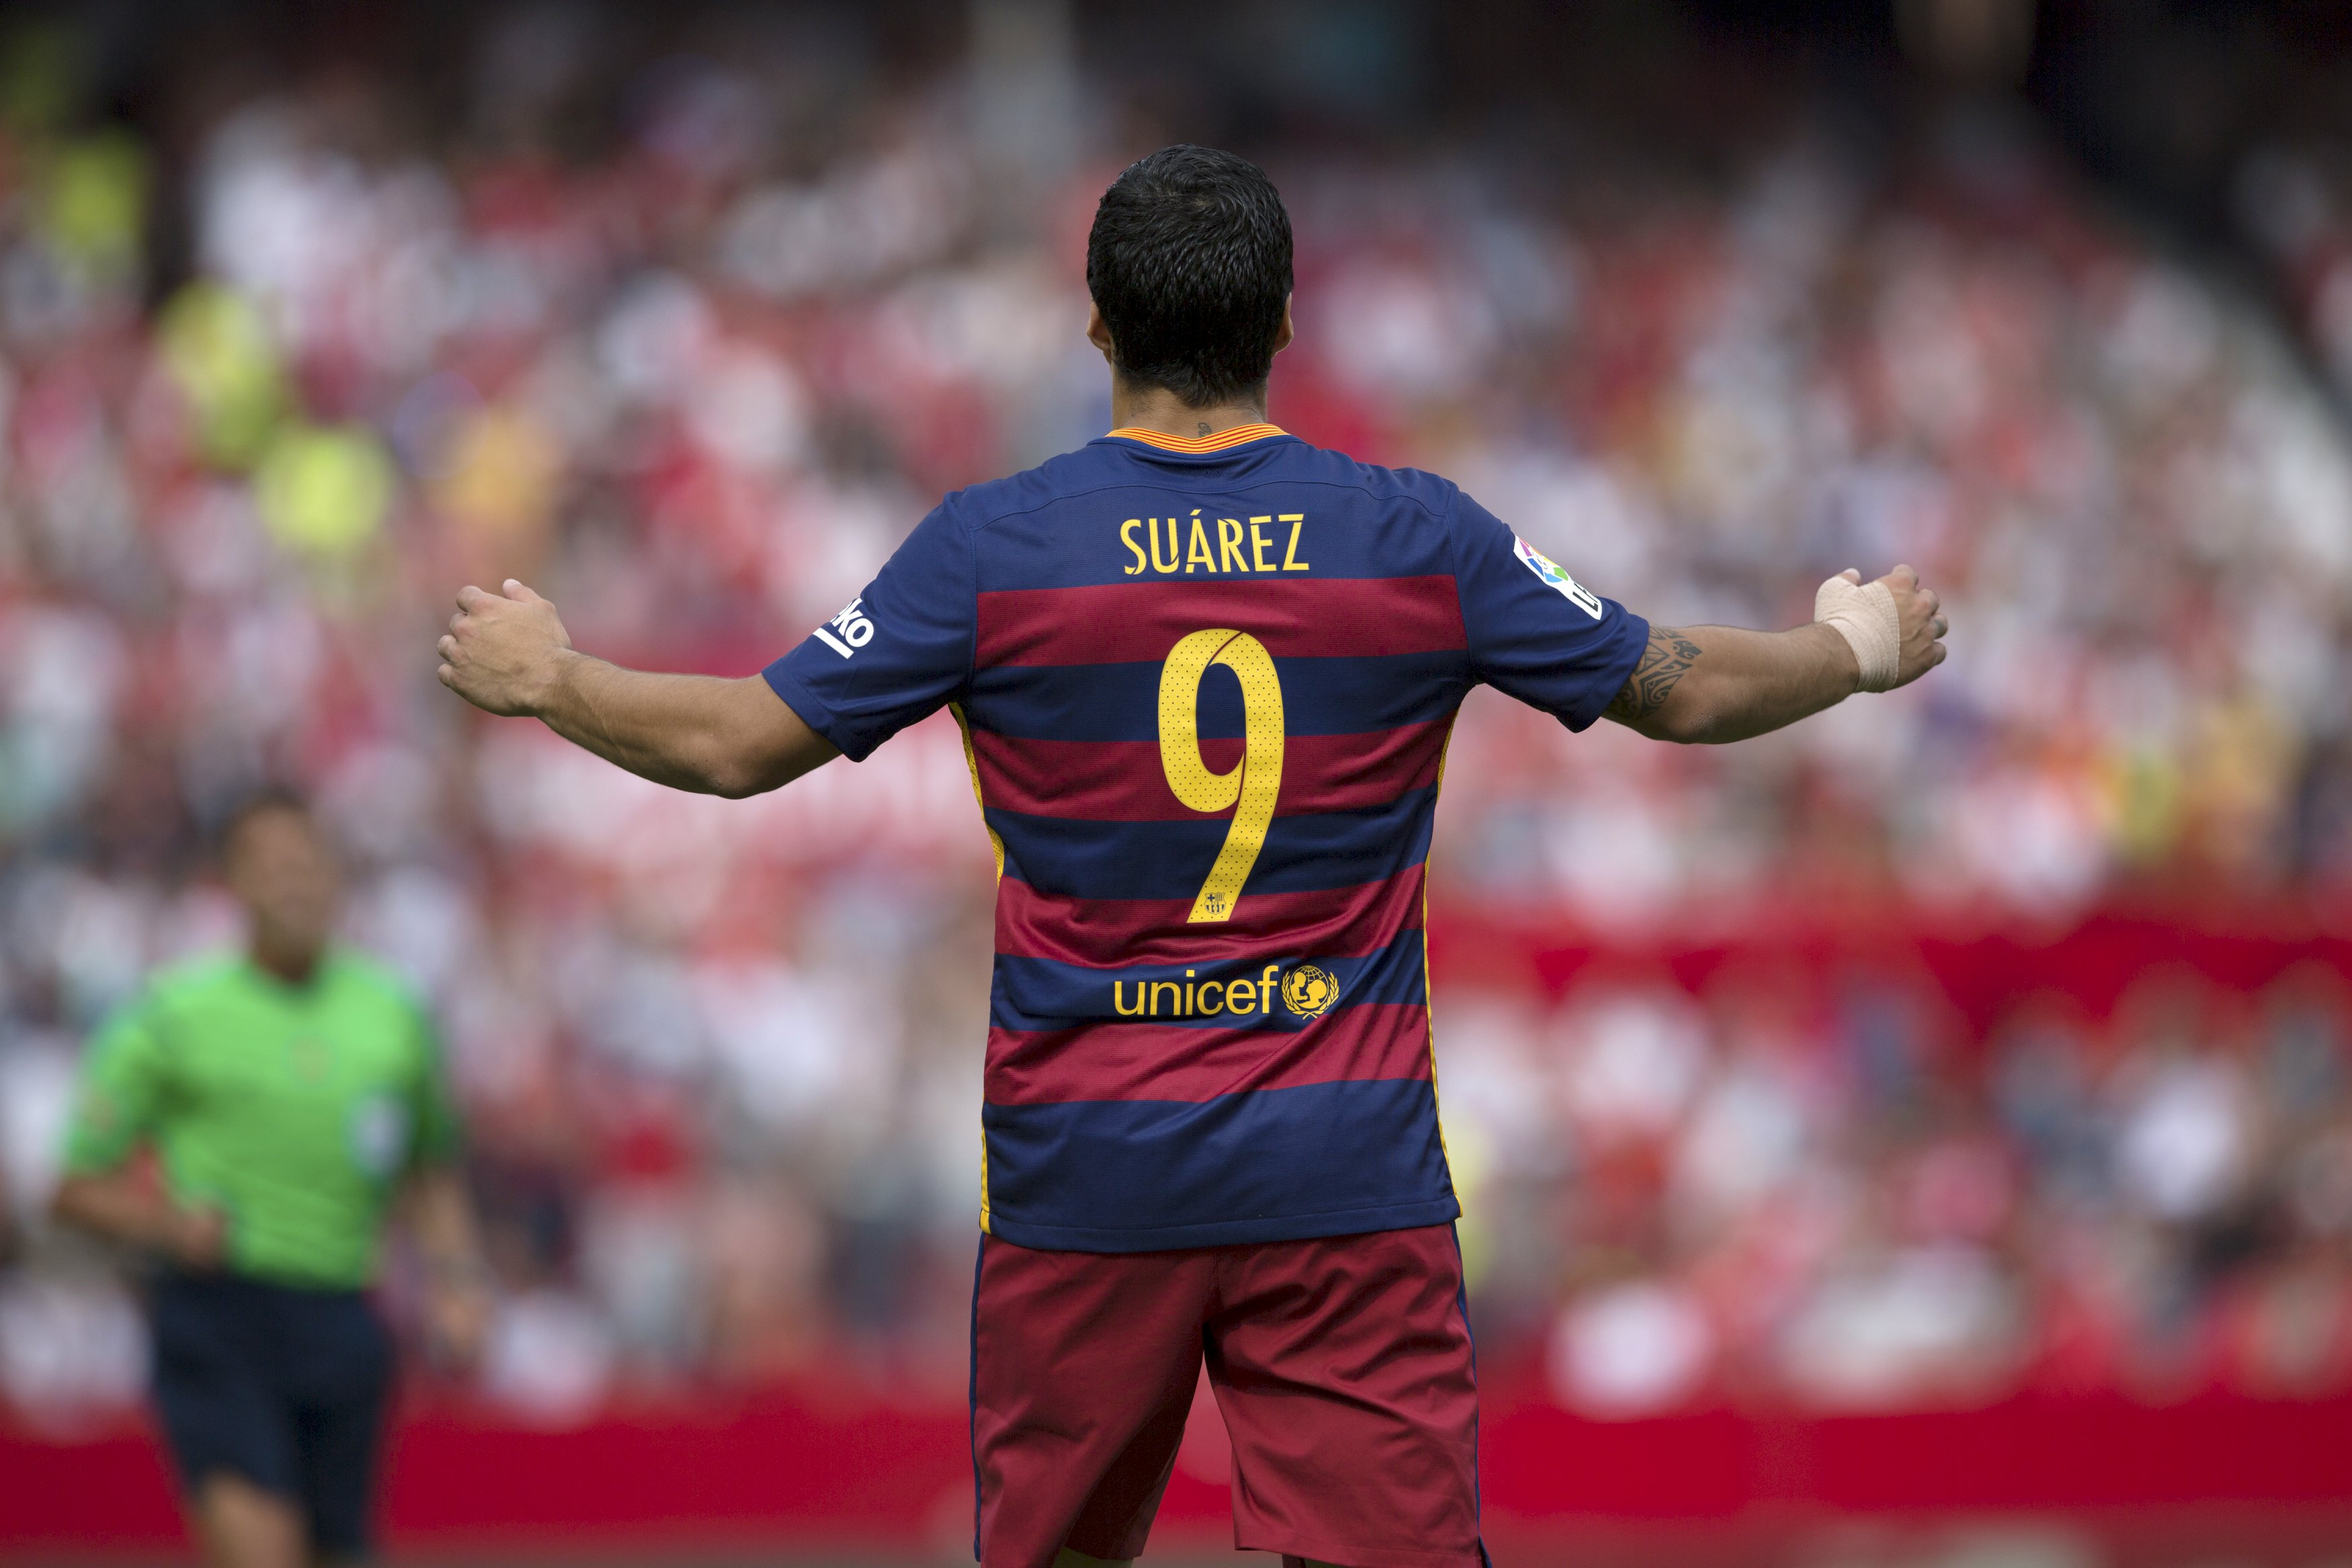 Barcelona's Luis Suarez reacts after missing a scoring opportunity during their Spanish first division soccer match against Sevilla at Ramon Sanchez Pizjuan stadium in Seville, southern Spain, October 3, 2015. REUTERS/Marcelo del Pozo